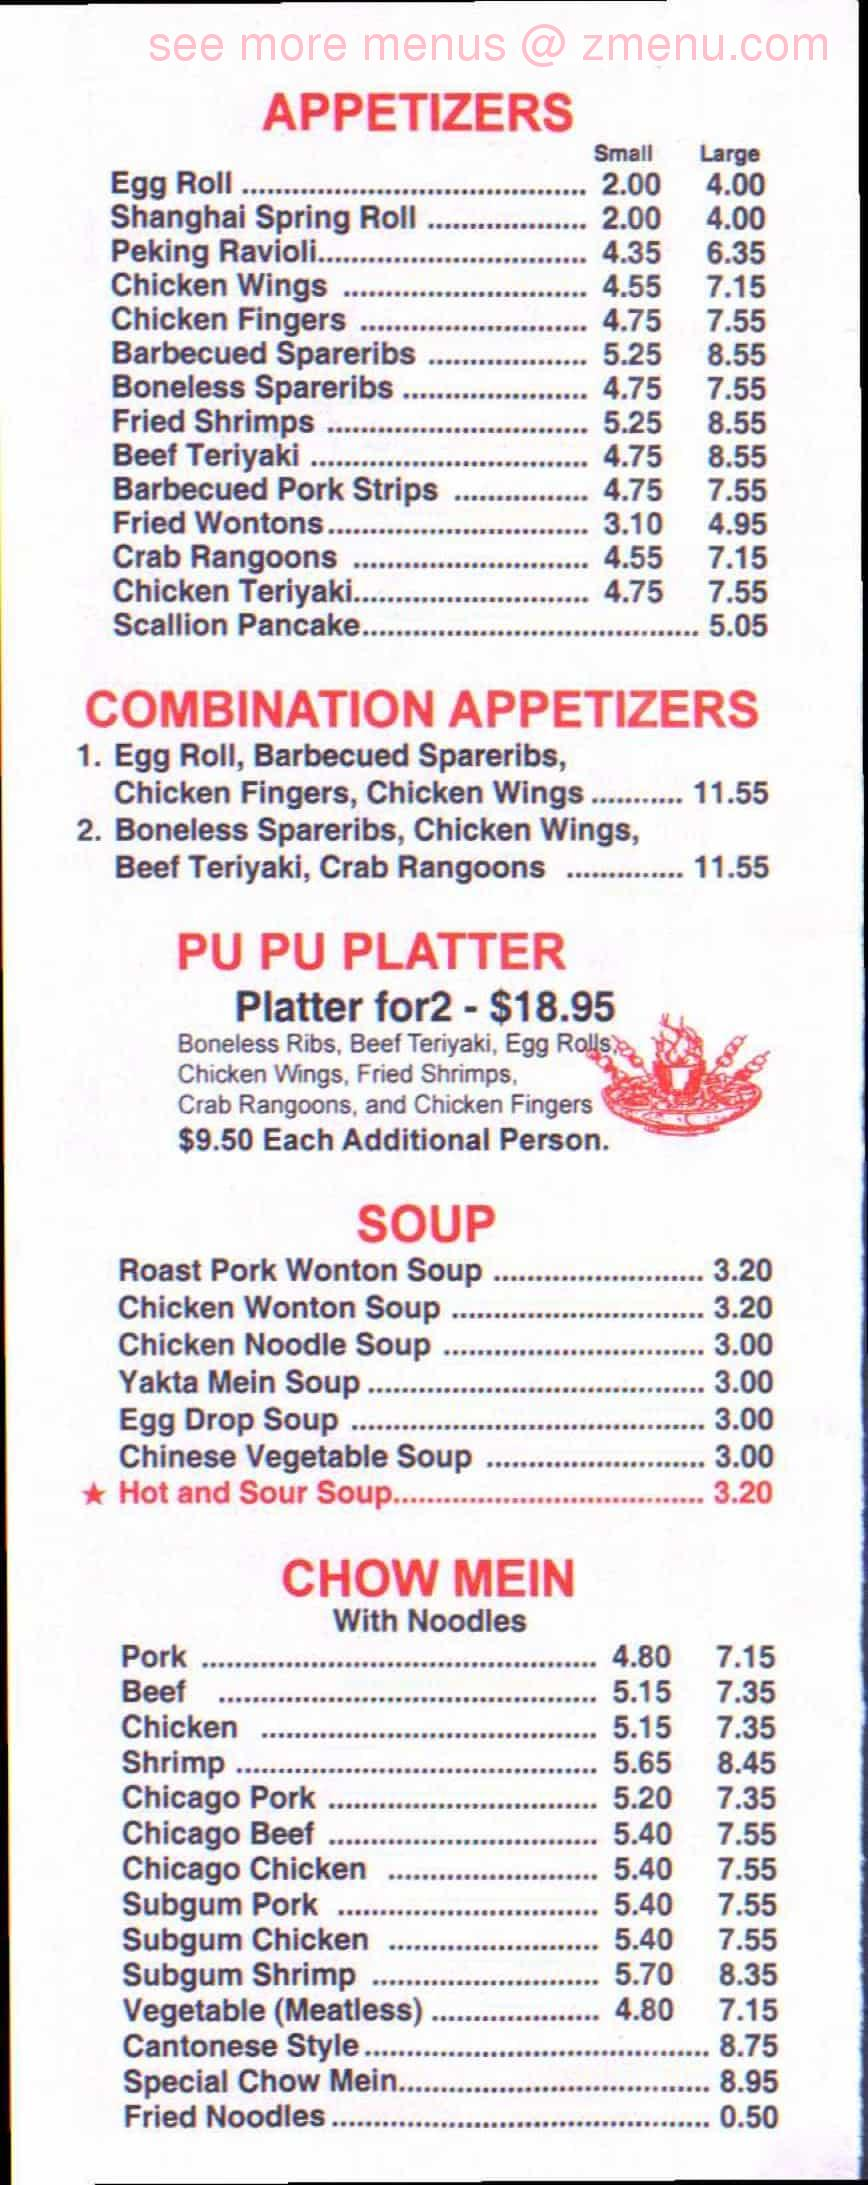 Golden dragon worcester ma menu how to take steroids for bodybuilding